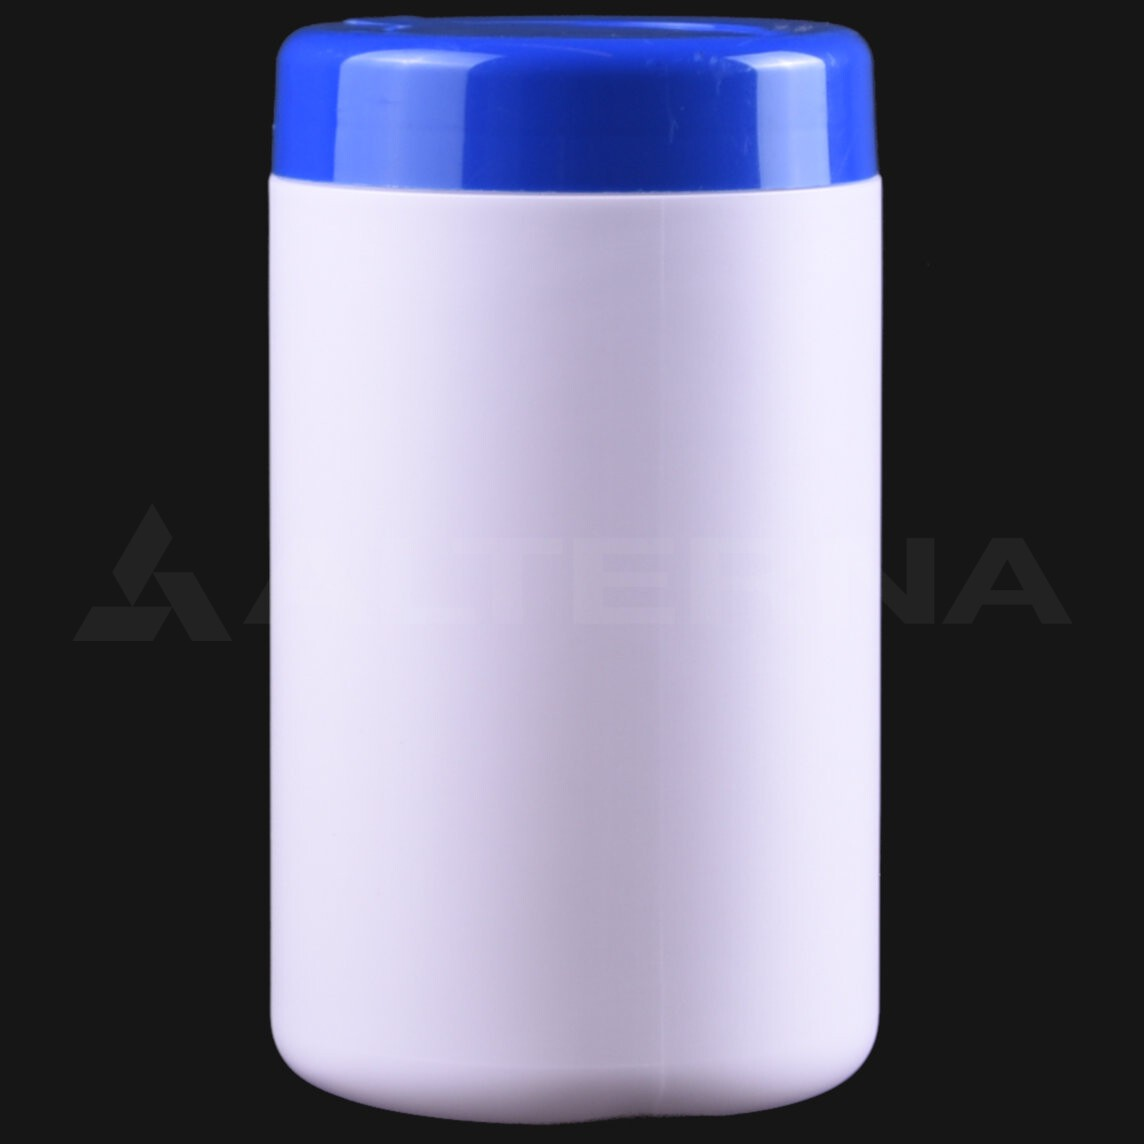 HDPE Jar for Wet Wipes (100 pcs)